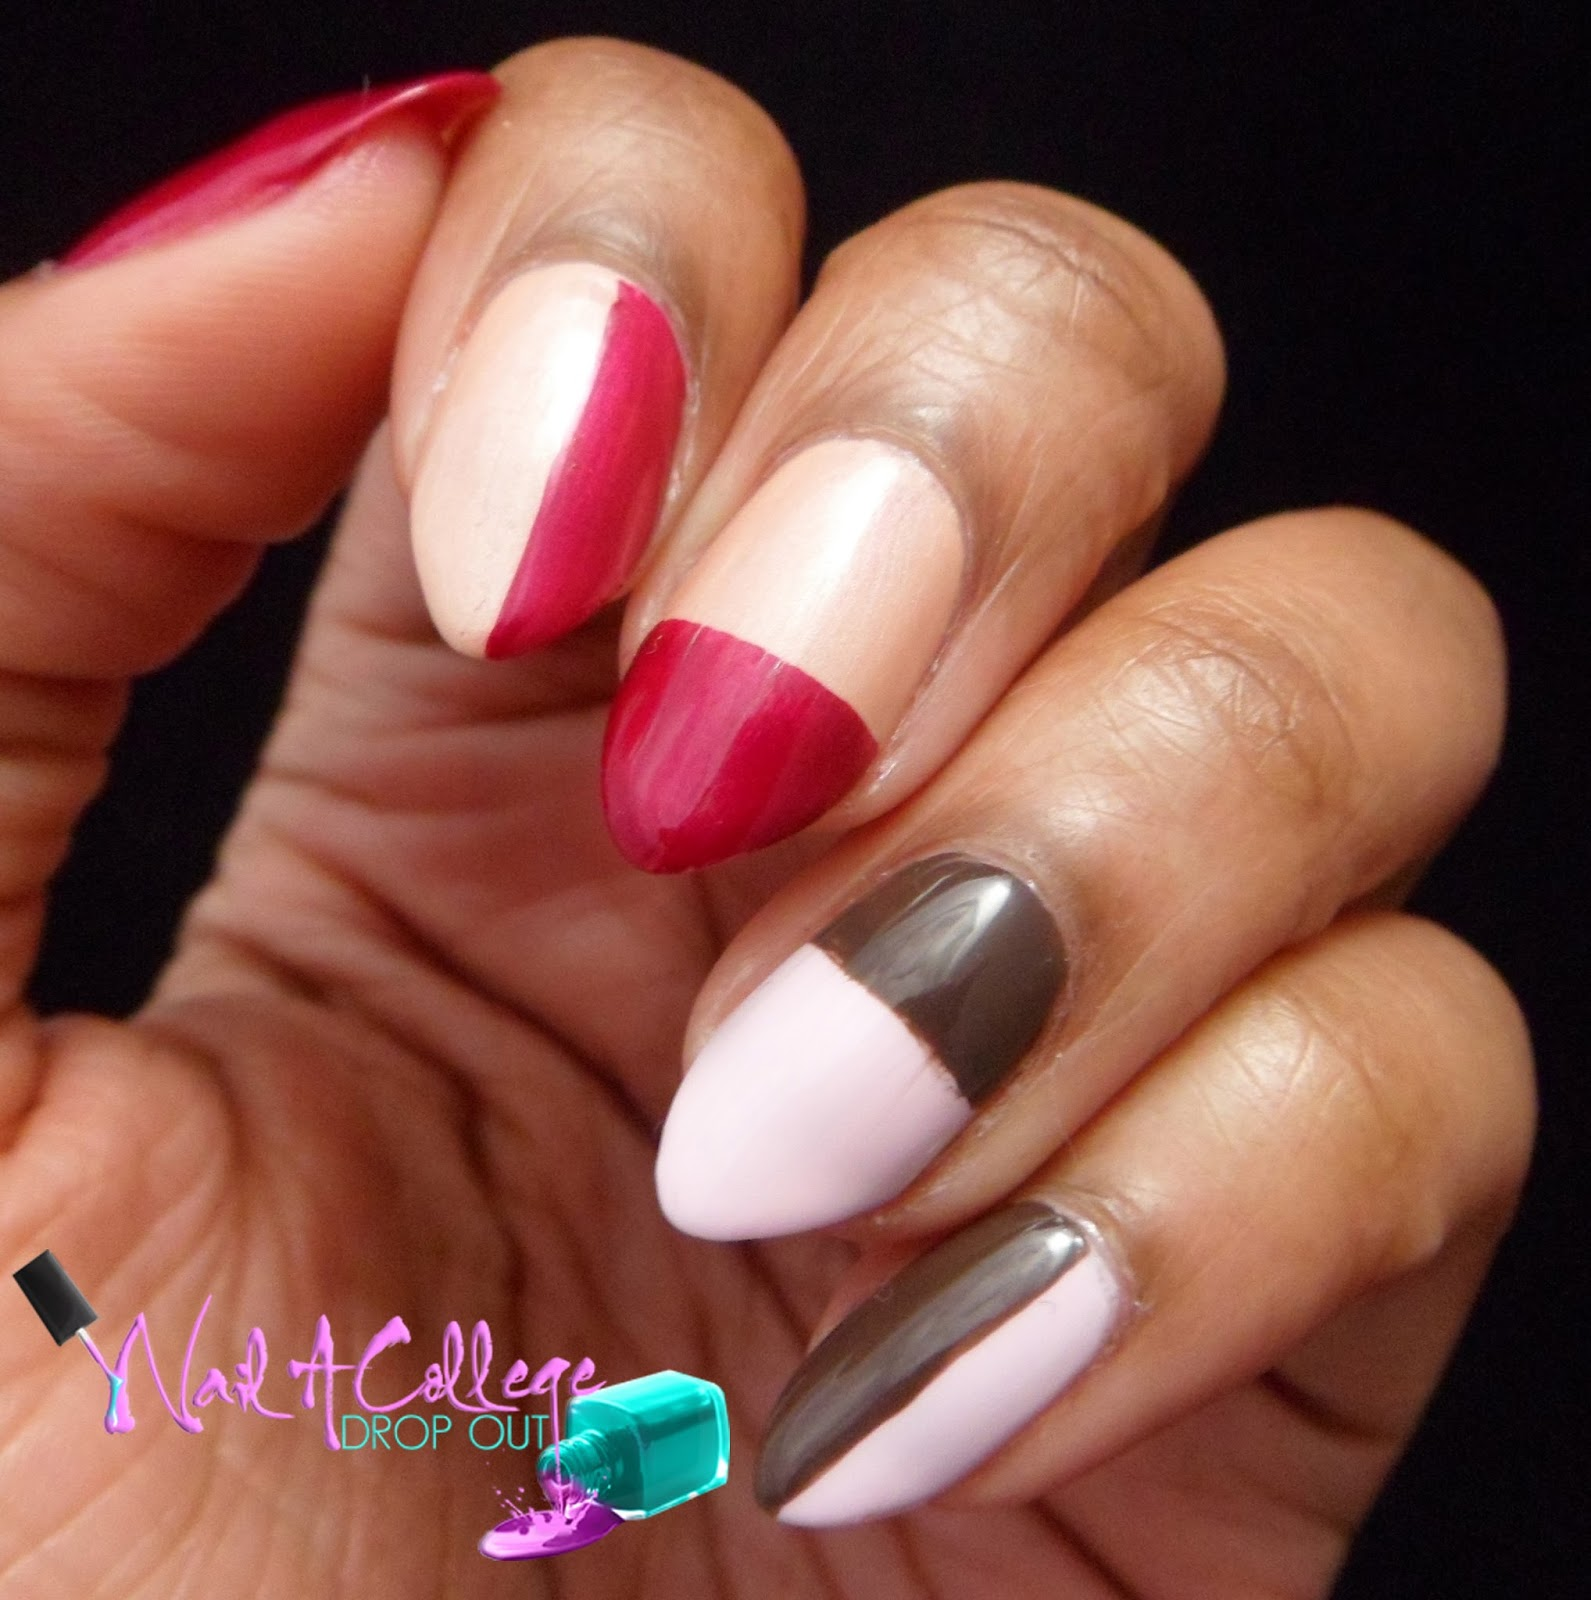 Nail A College Drop Out Lcn Sweet Serenity Nail Art